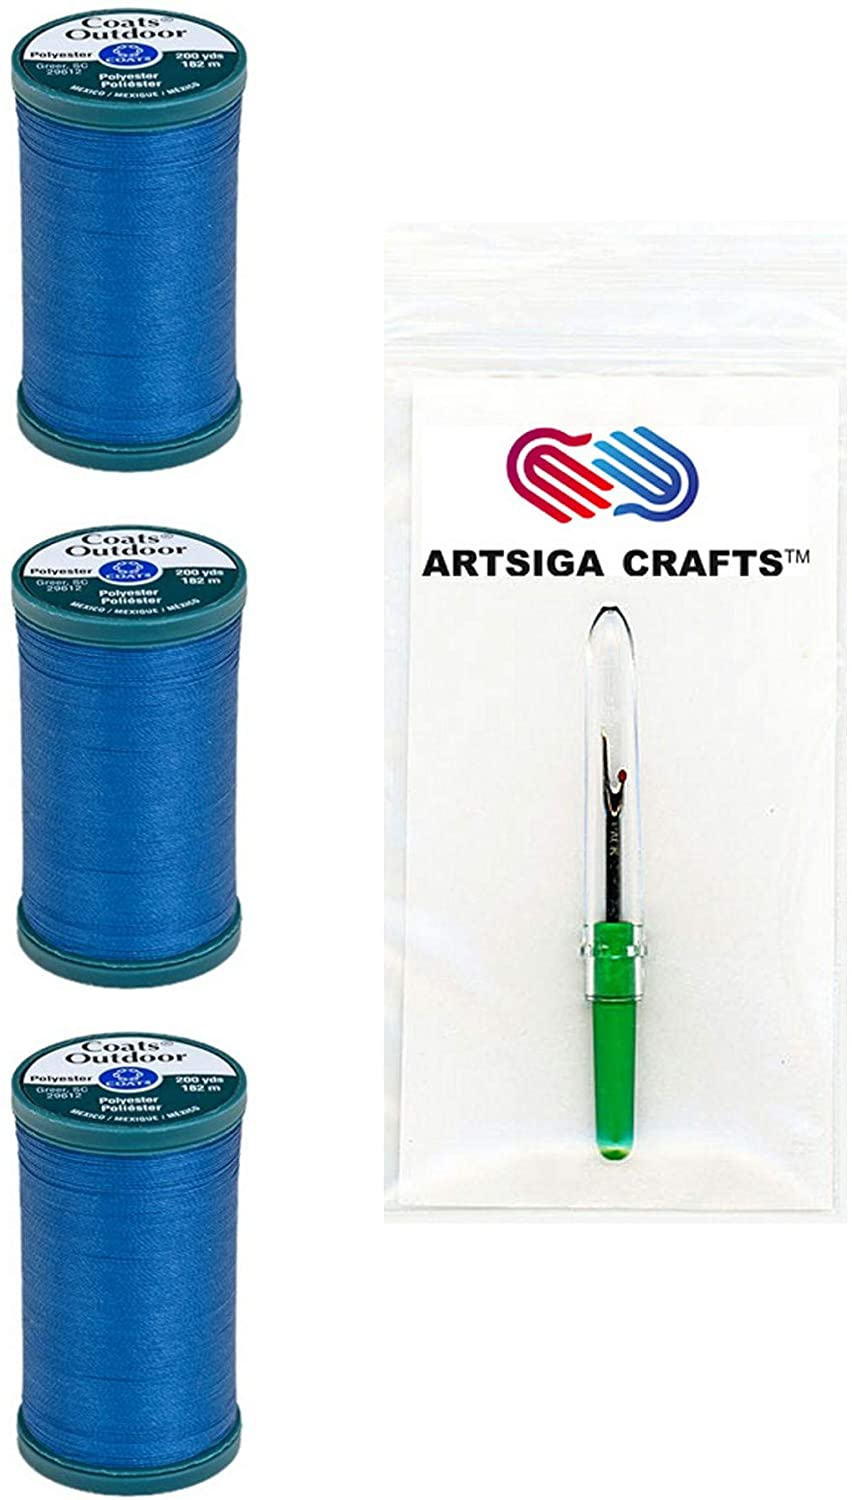 Coats & Clark Sewing Thread Outdoor Living Polyester Thread 200 Yards (3-Pack) Monaco Blue Bundle with 1 Artsiga Crafts Seam Ripper S971-4270-3P